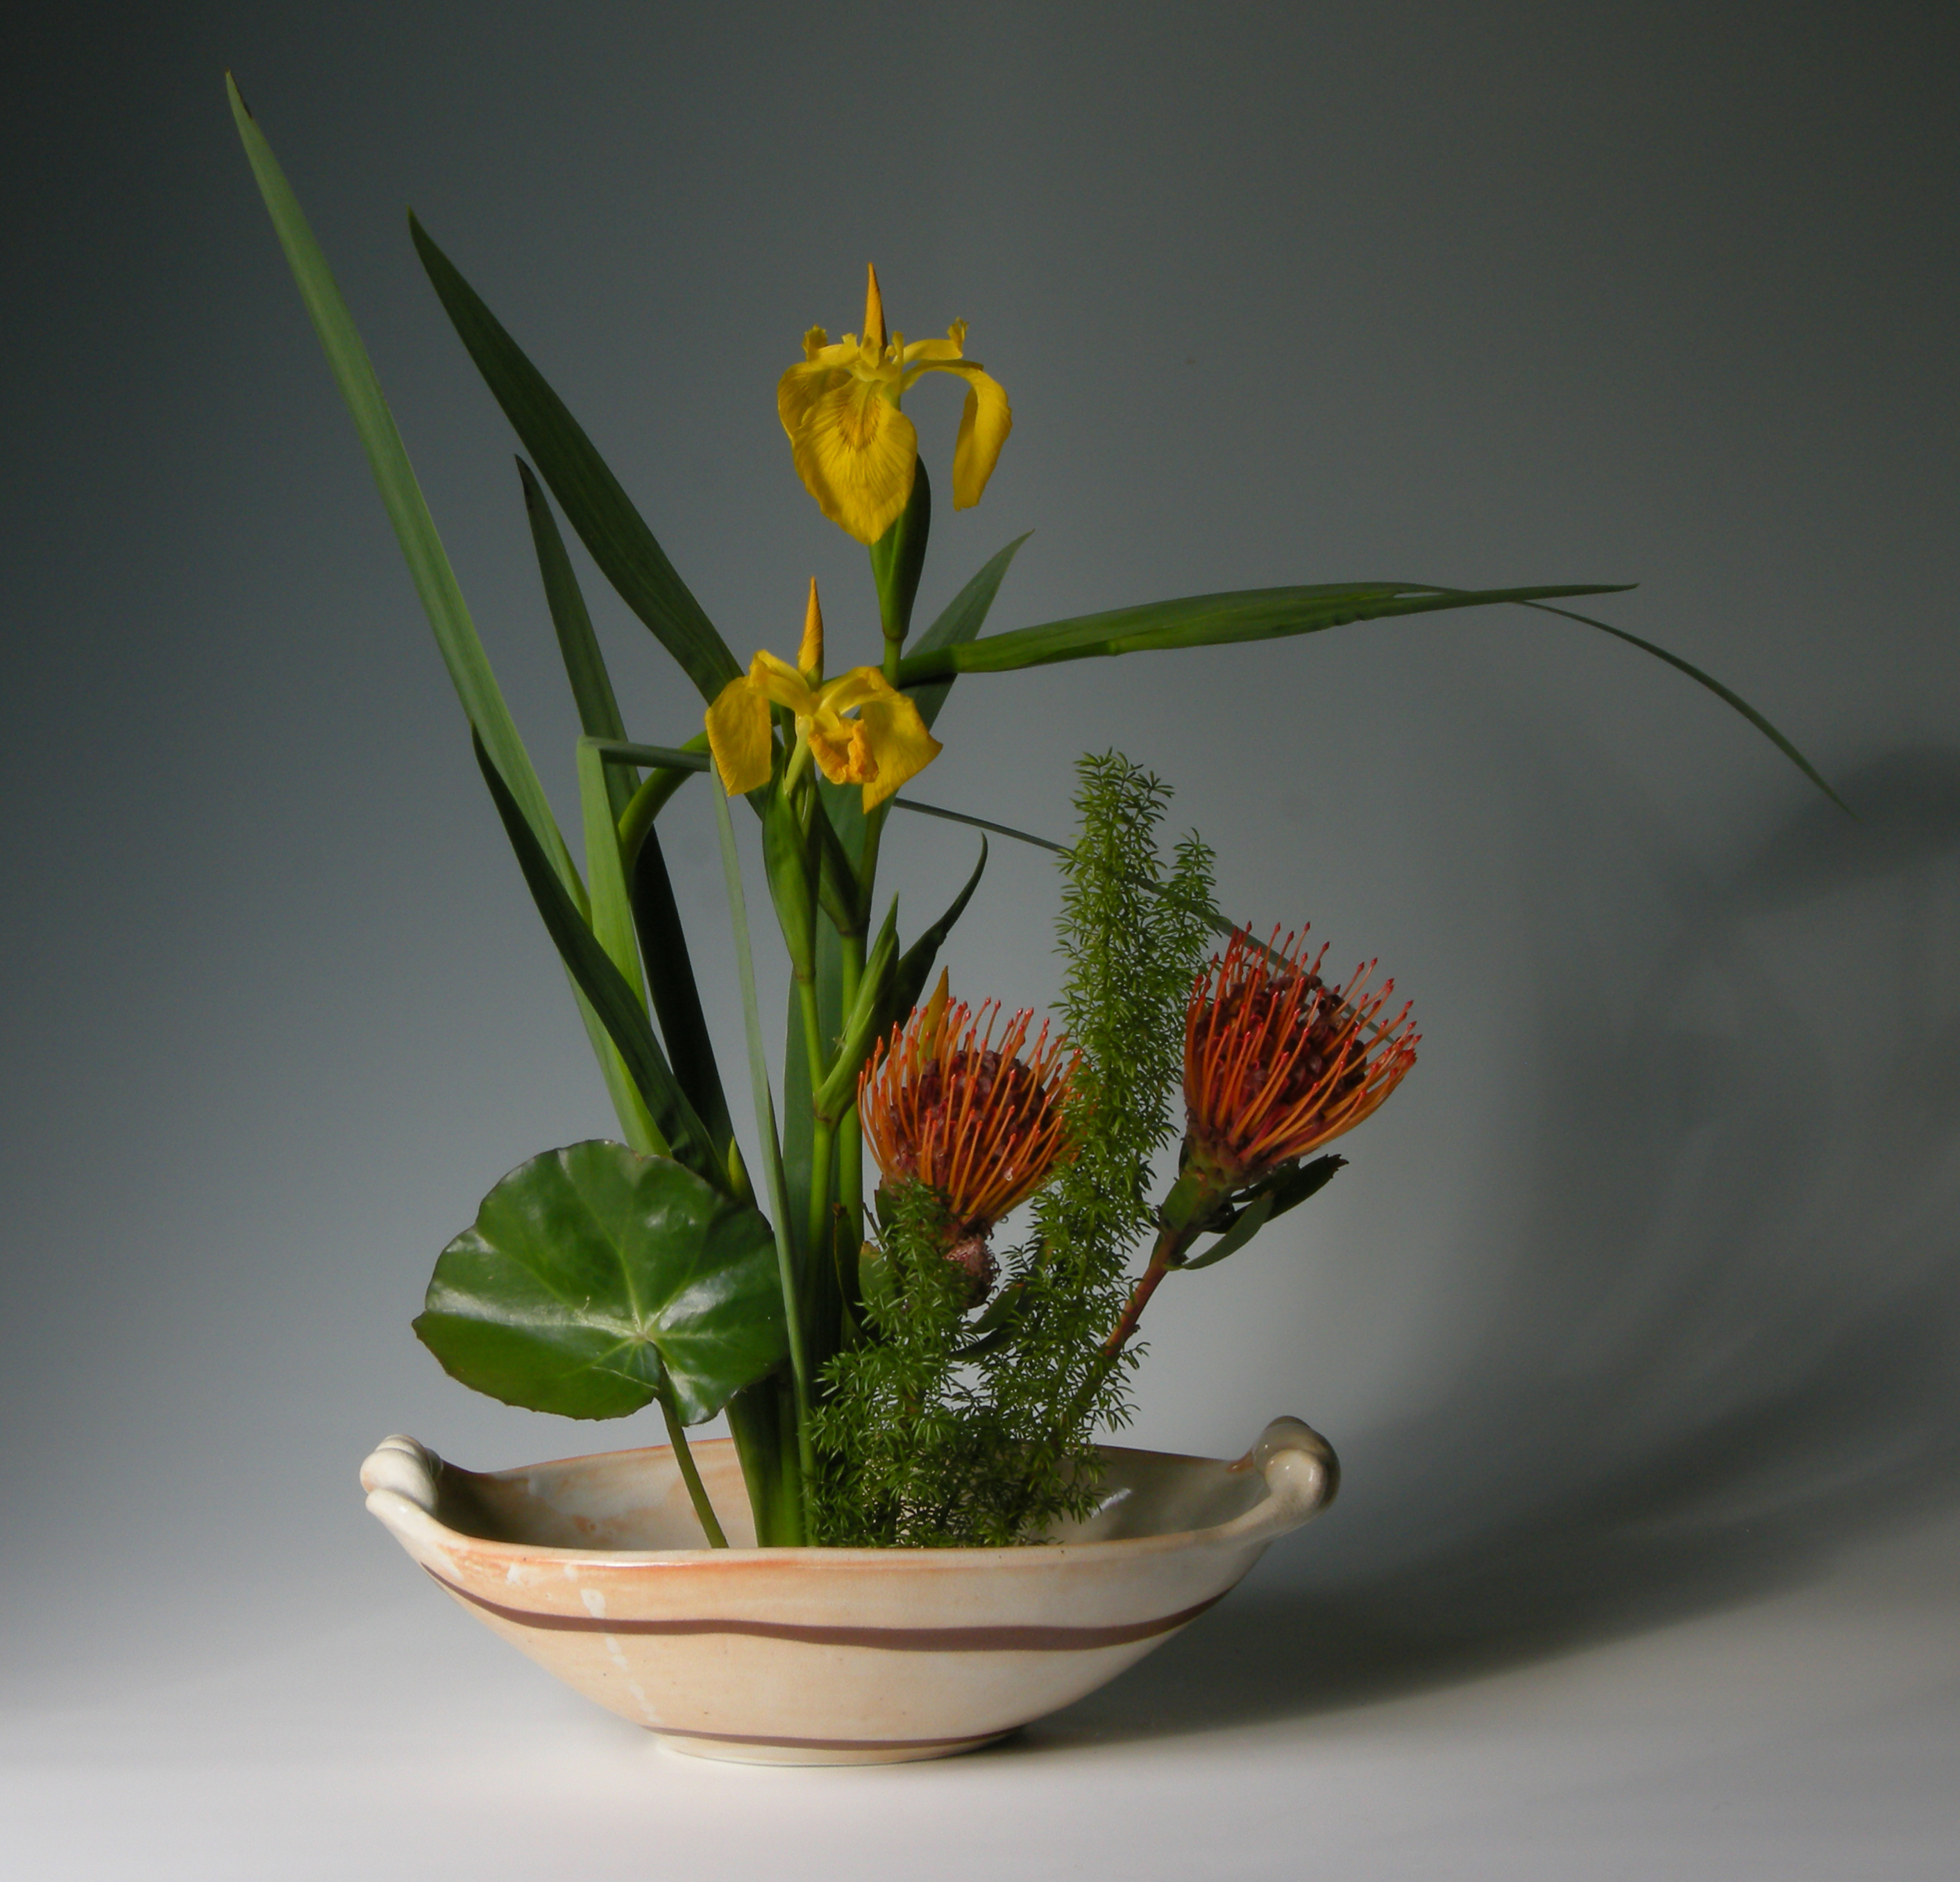 Wordpress Free Page Builder Ikebana At Milkhouse Studio Nell Hazinski